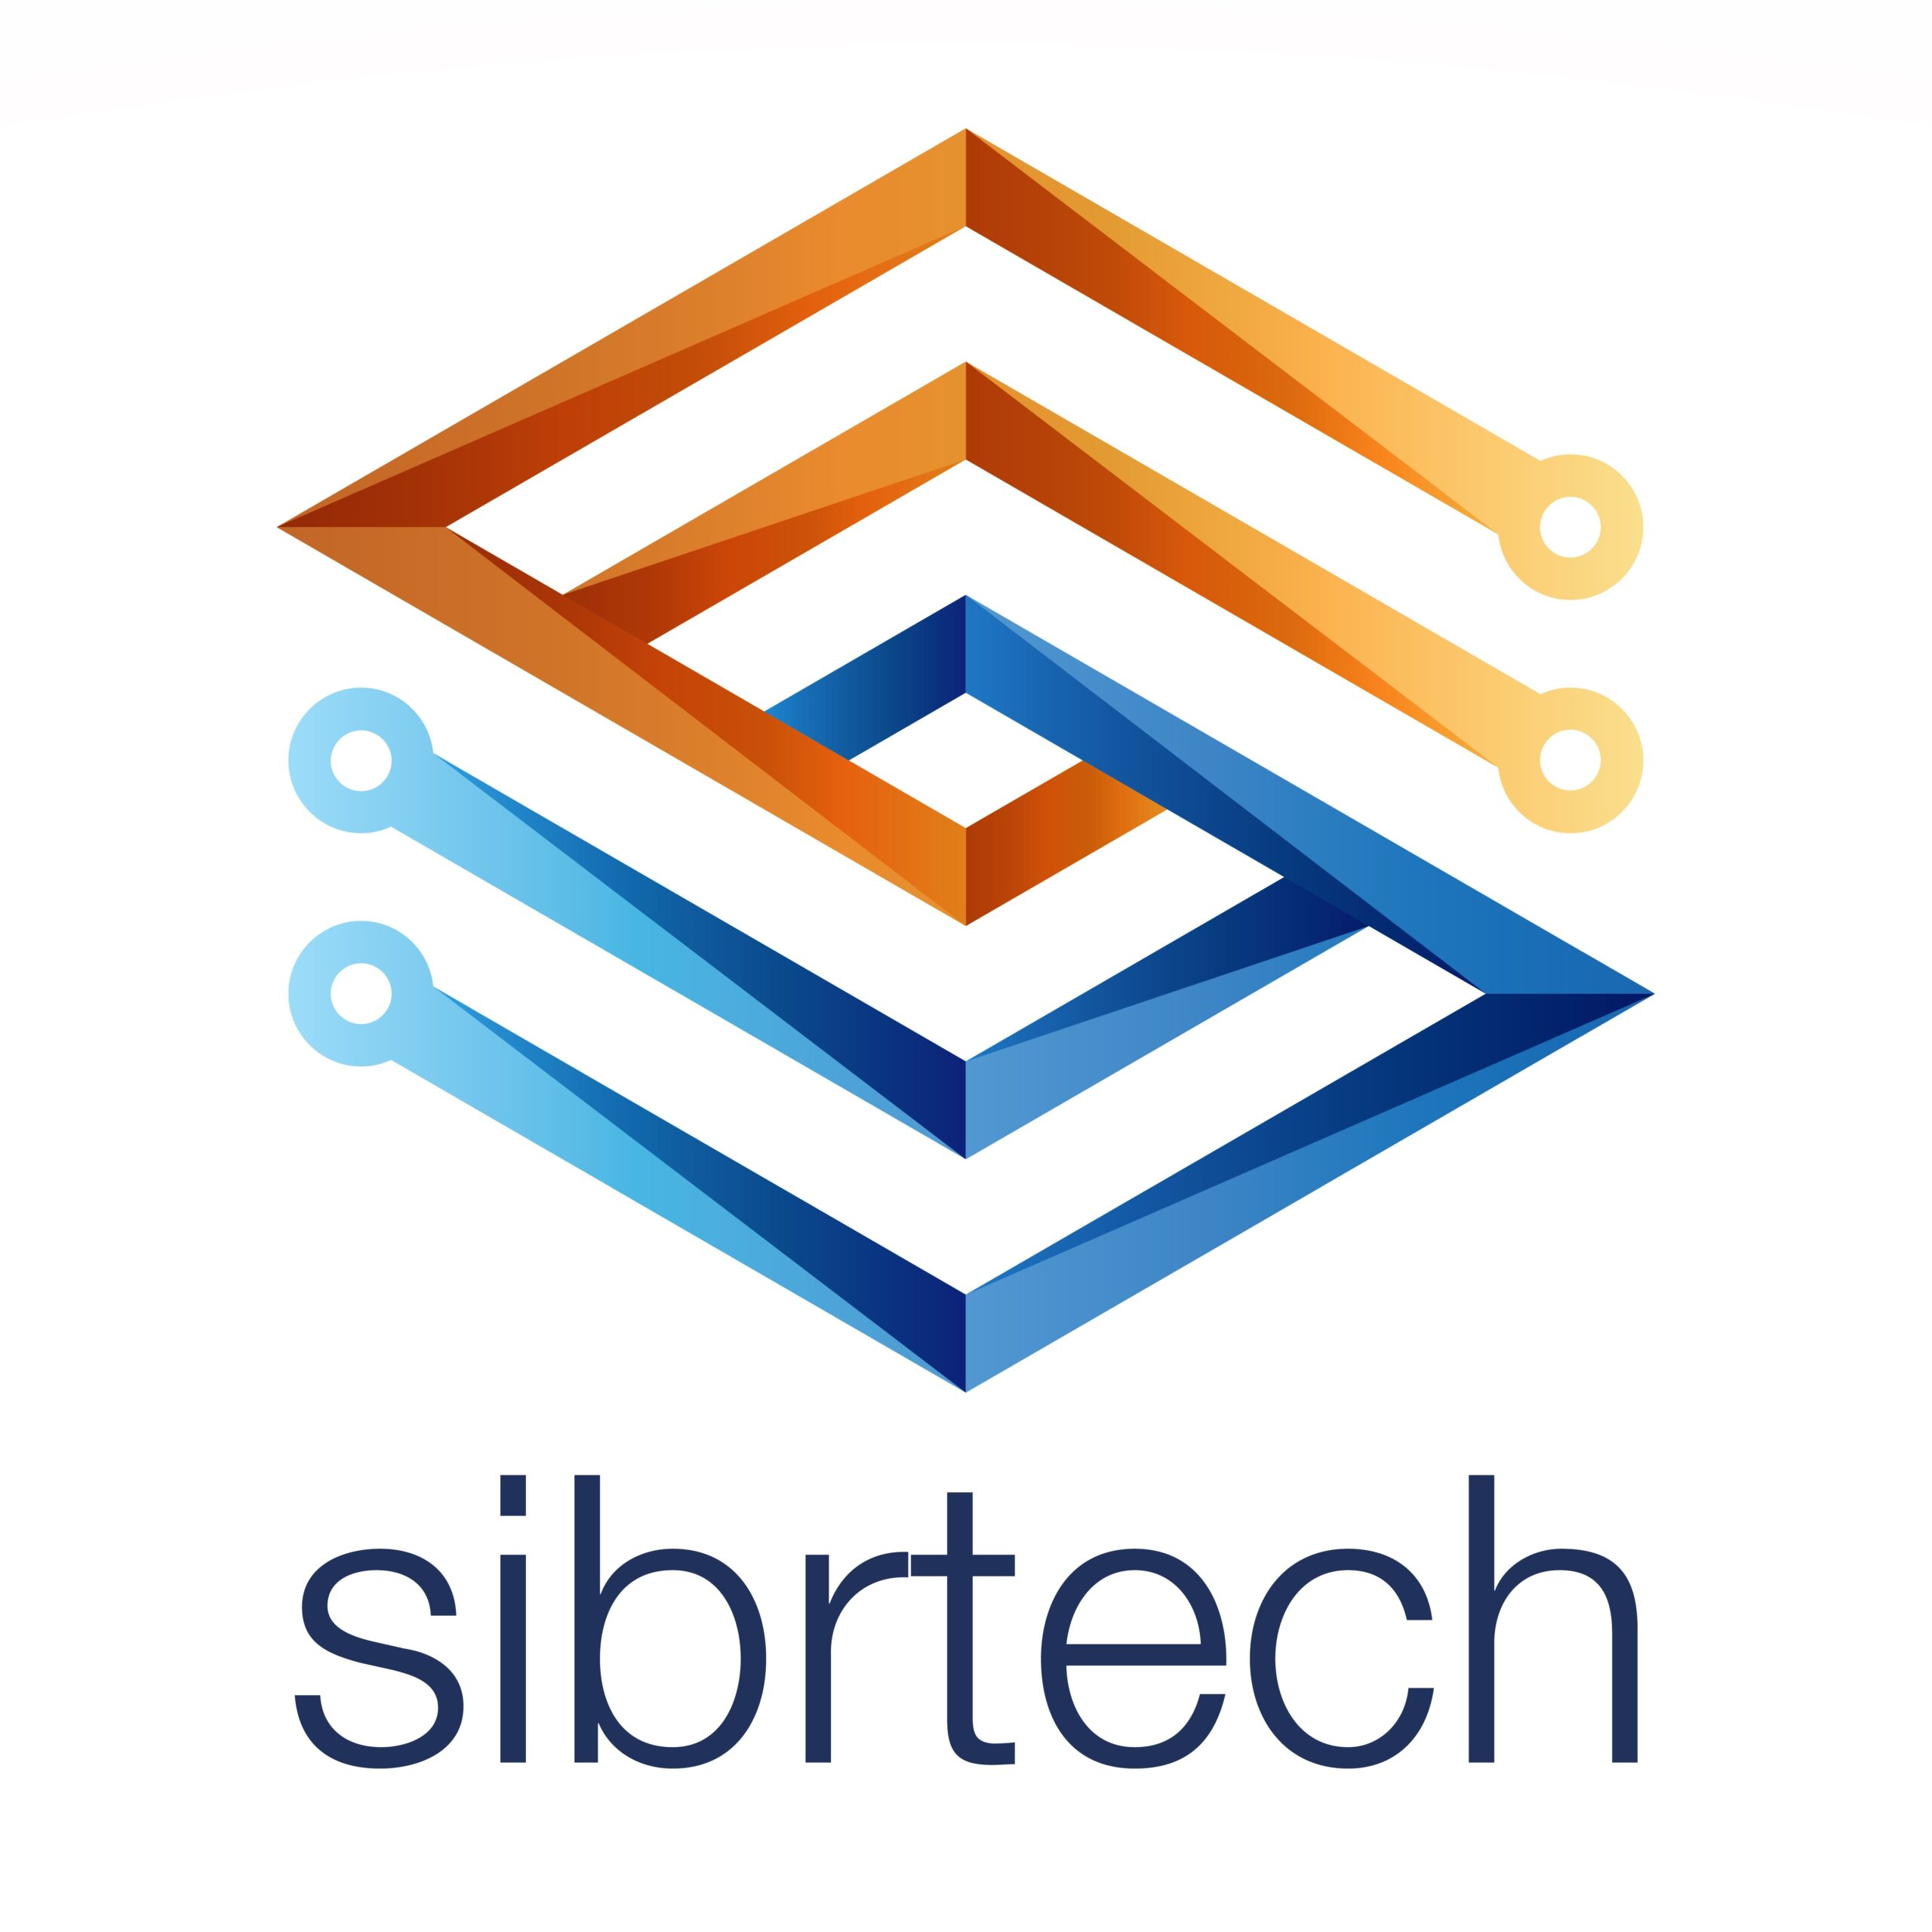 sibrtech inc. Successfully Tests Its Smart Road Safety Technology Providing 'Look Ahead' Data for Oncoming Drivers